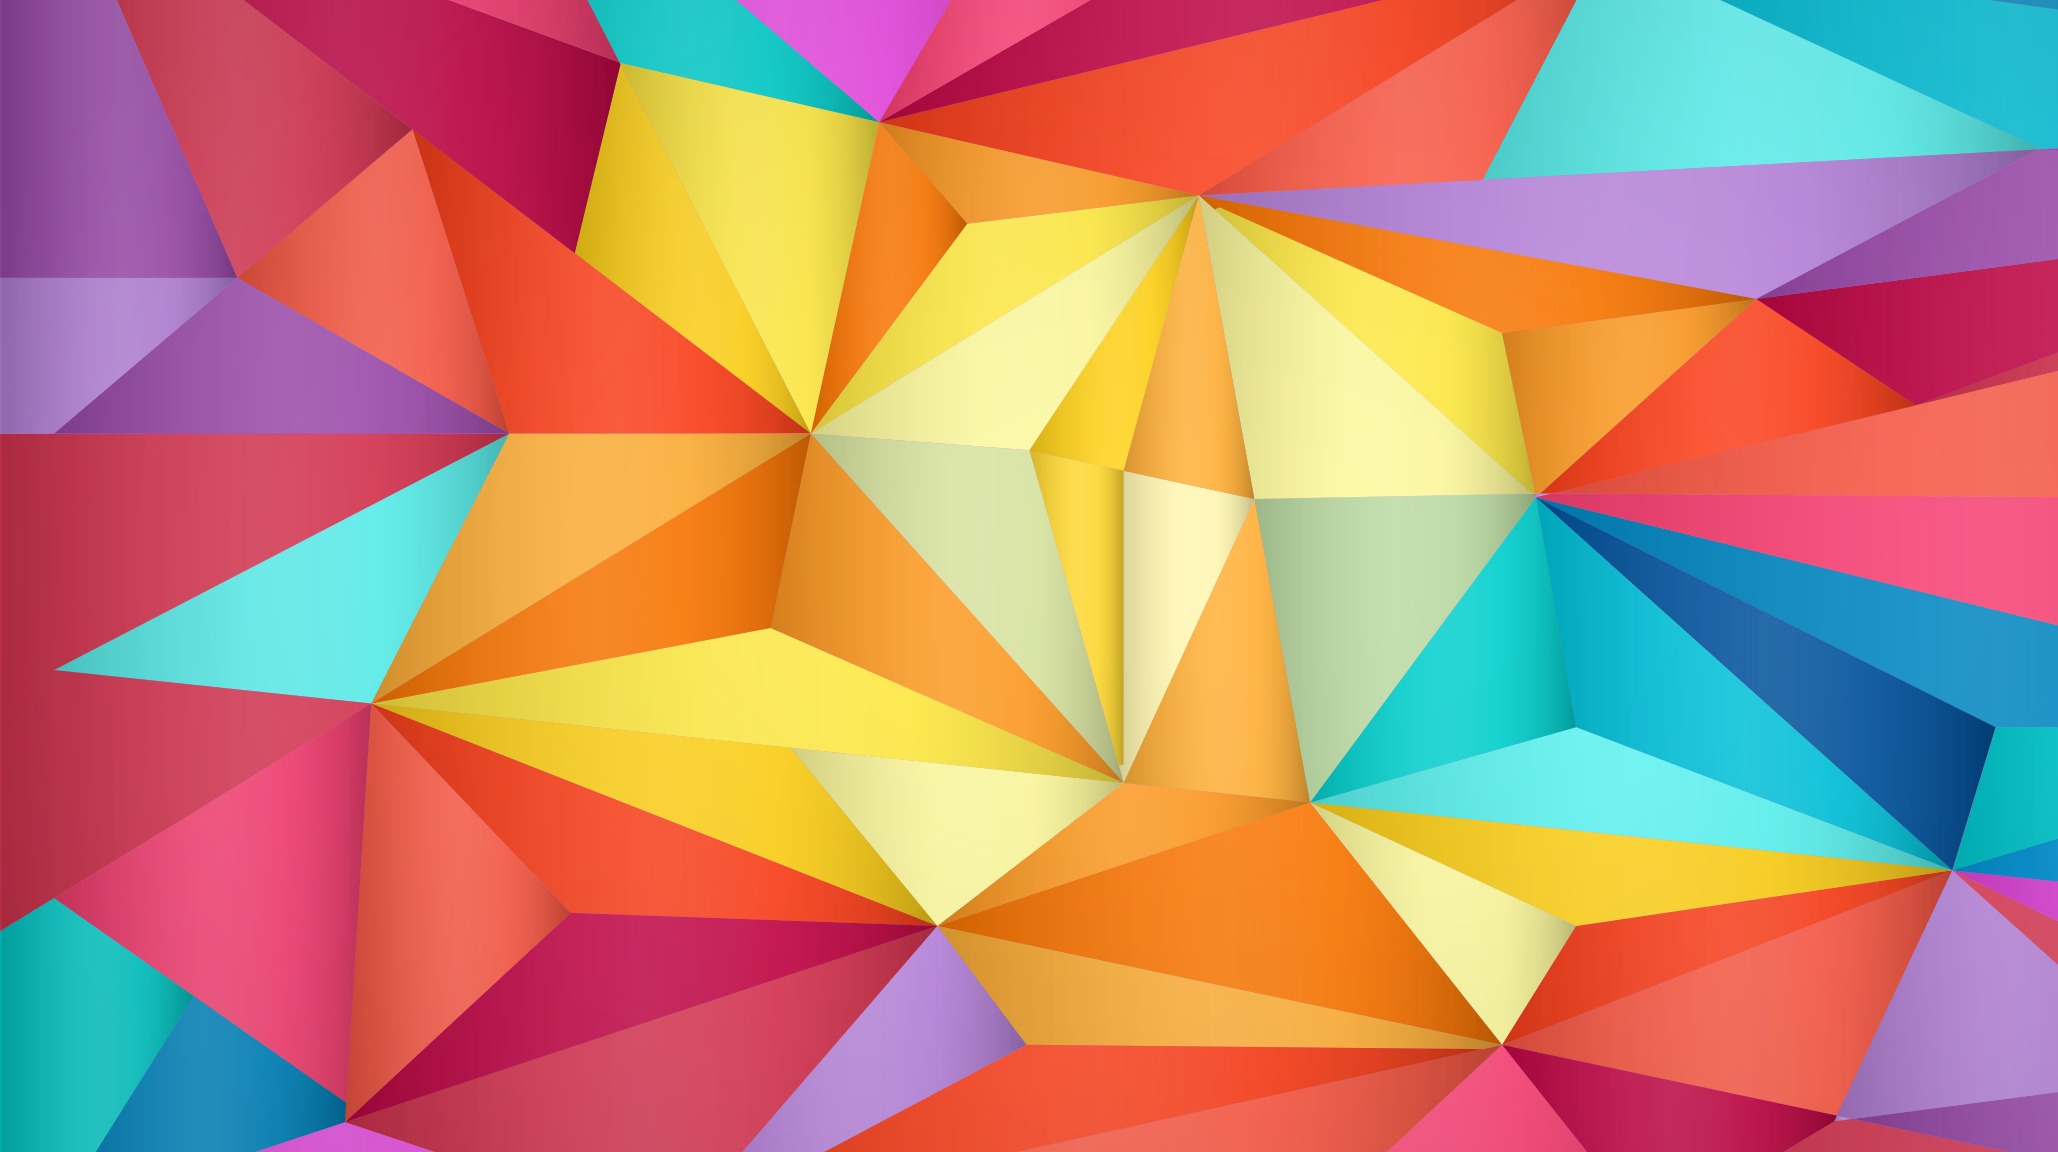 triangle design images - HD 1920×1080